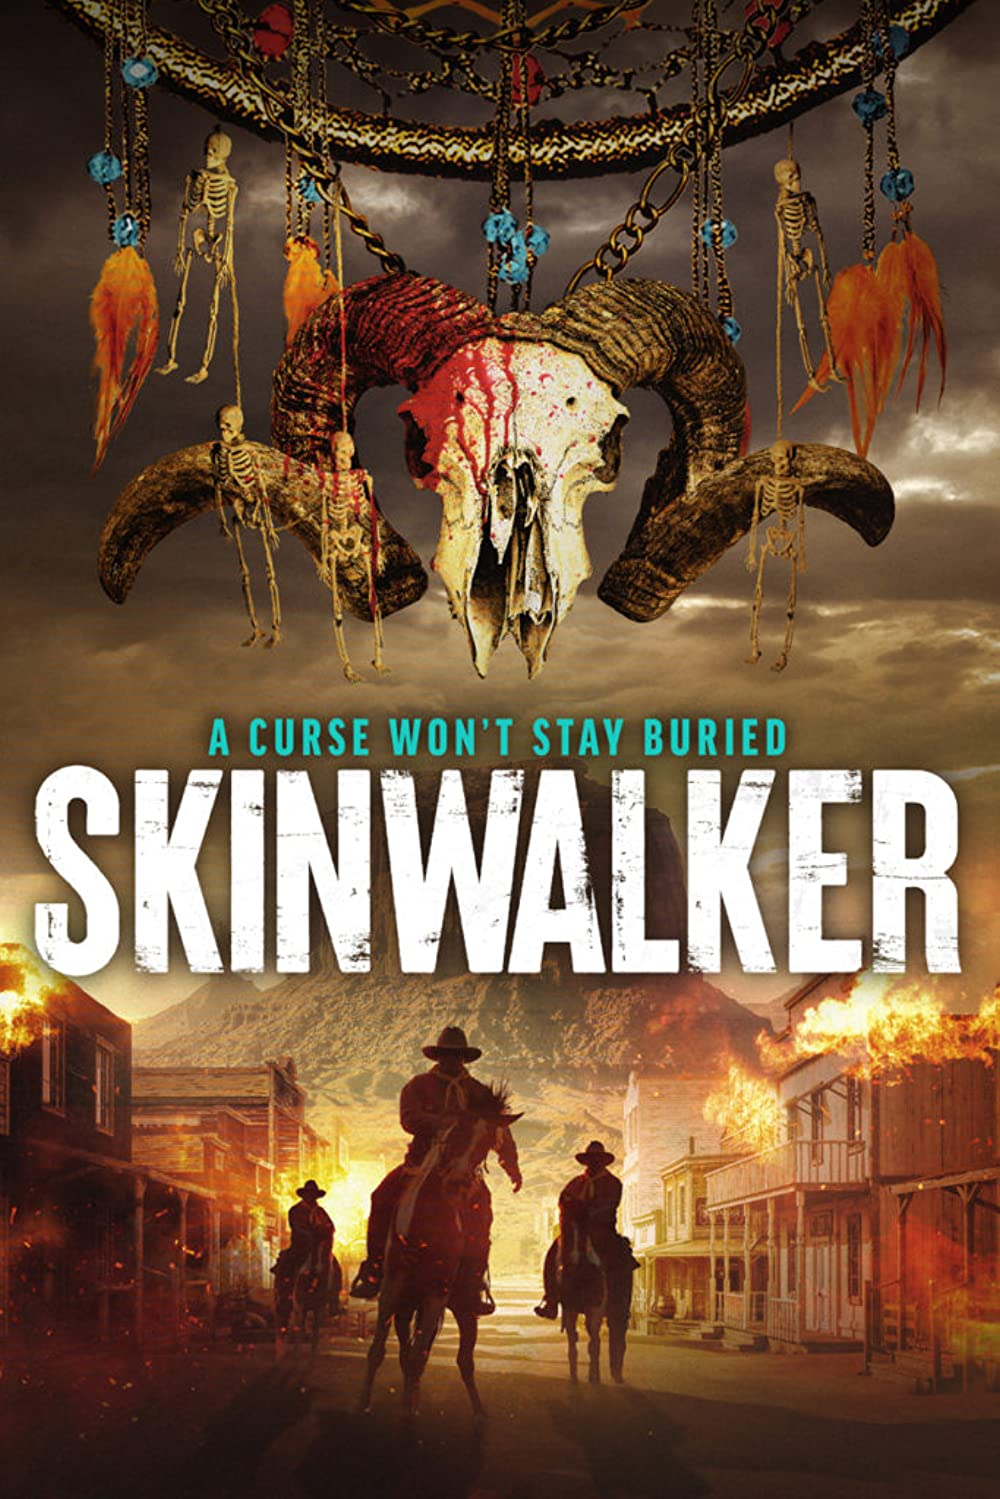 Download Skinwalker (2021) Tamil Dubbed (Voice Over) & English [Dual Audio] WebRip 720p [1XBET] Full Movie Online On 1xcinema.com